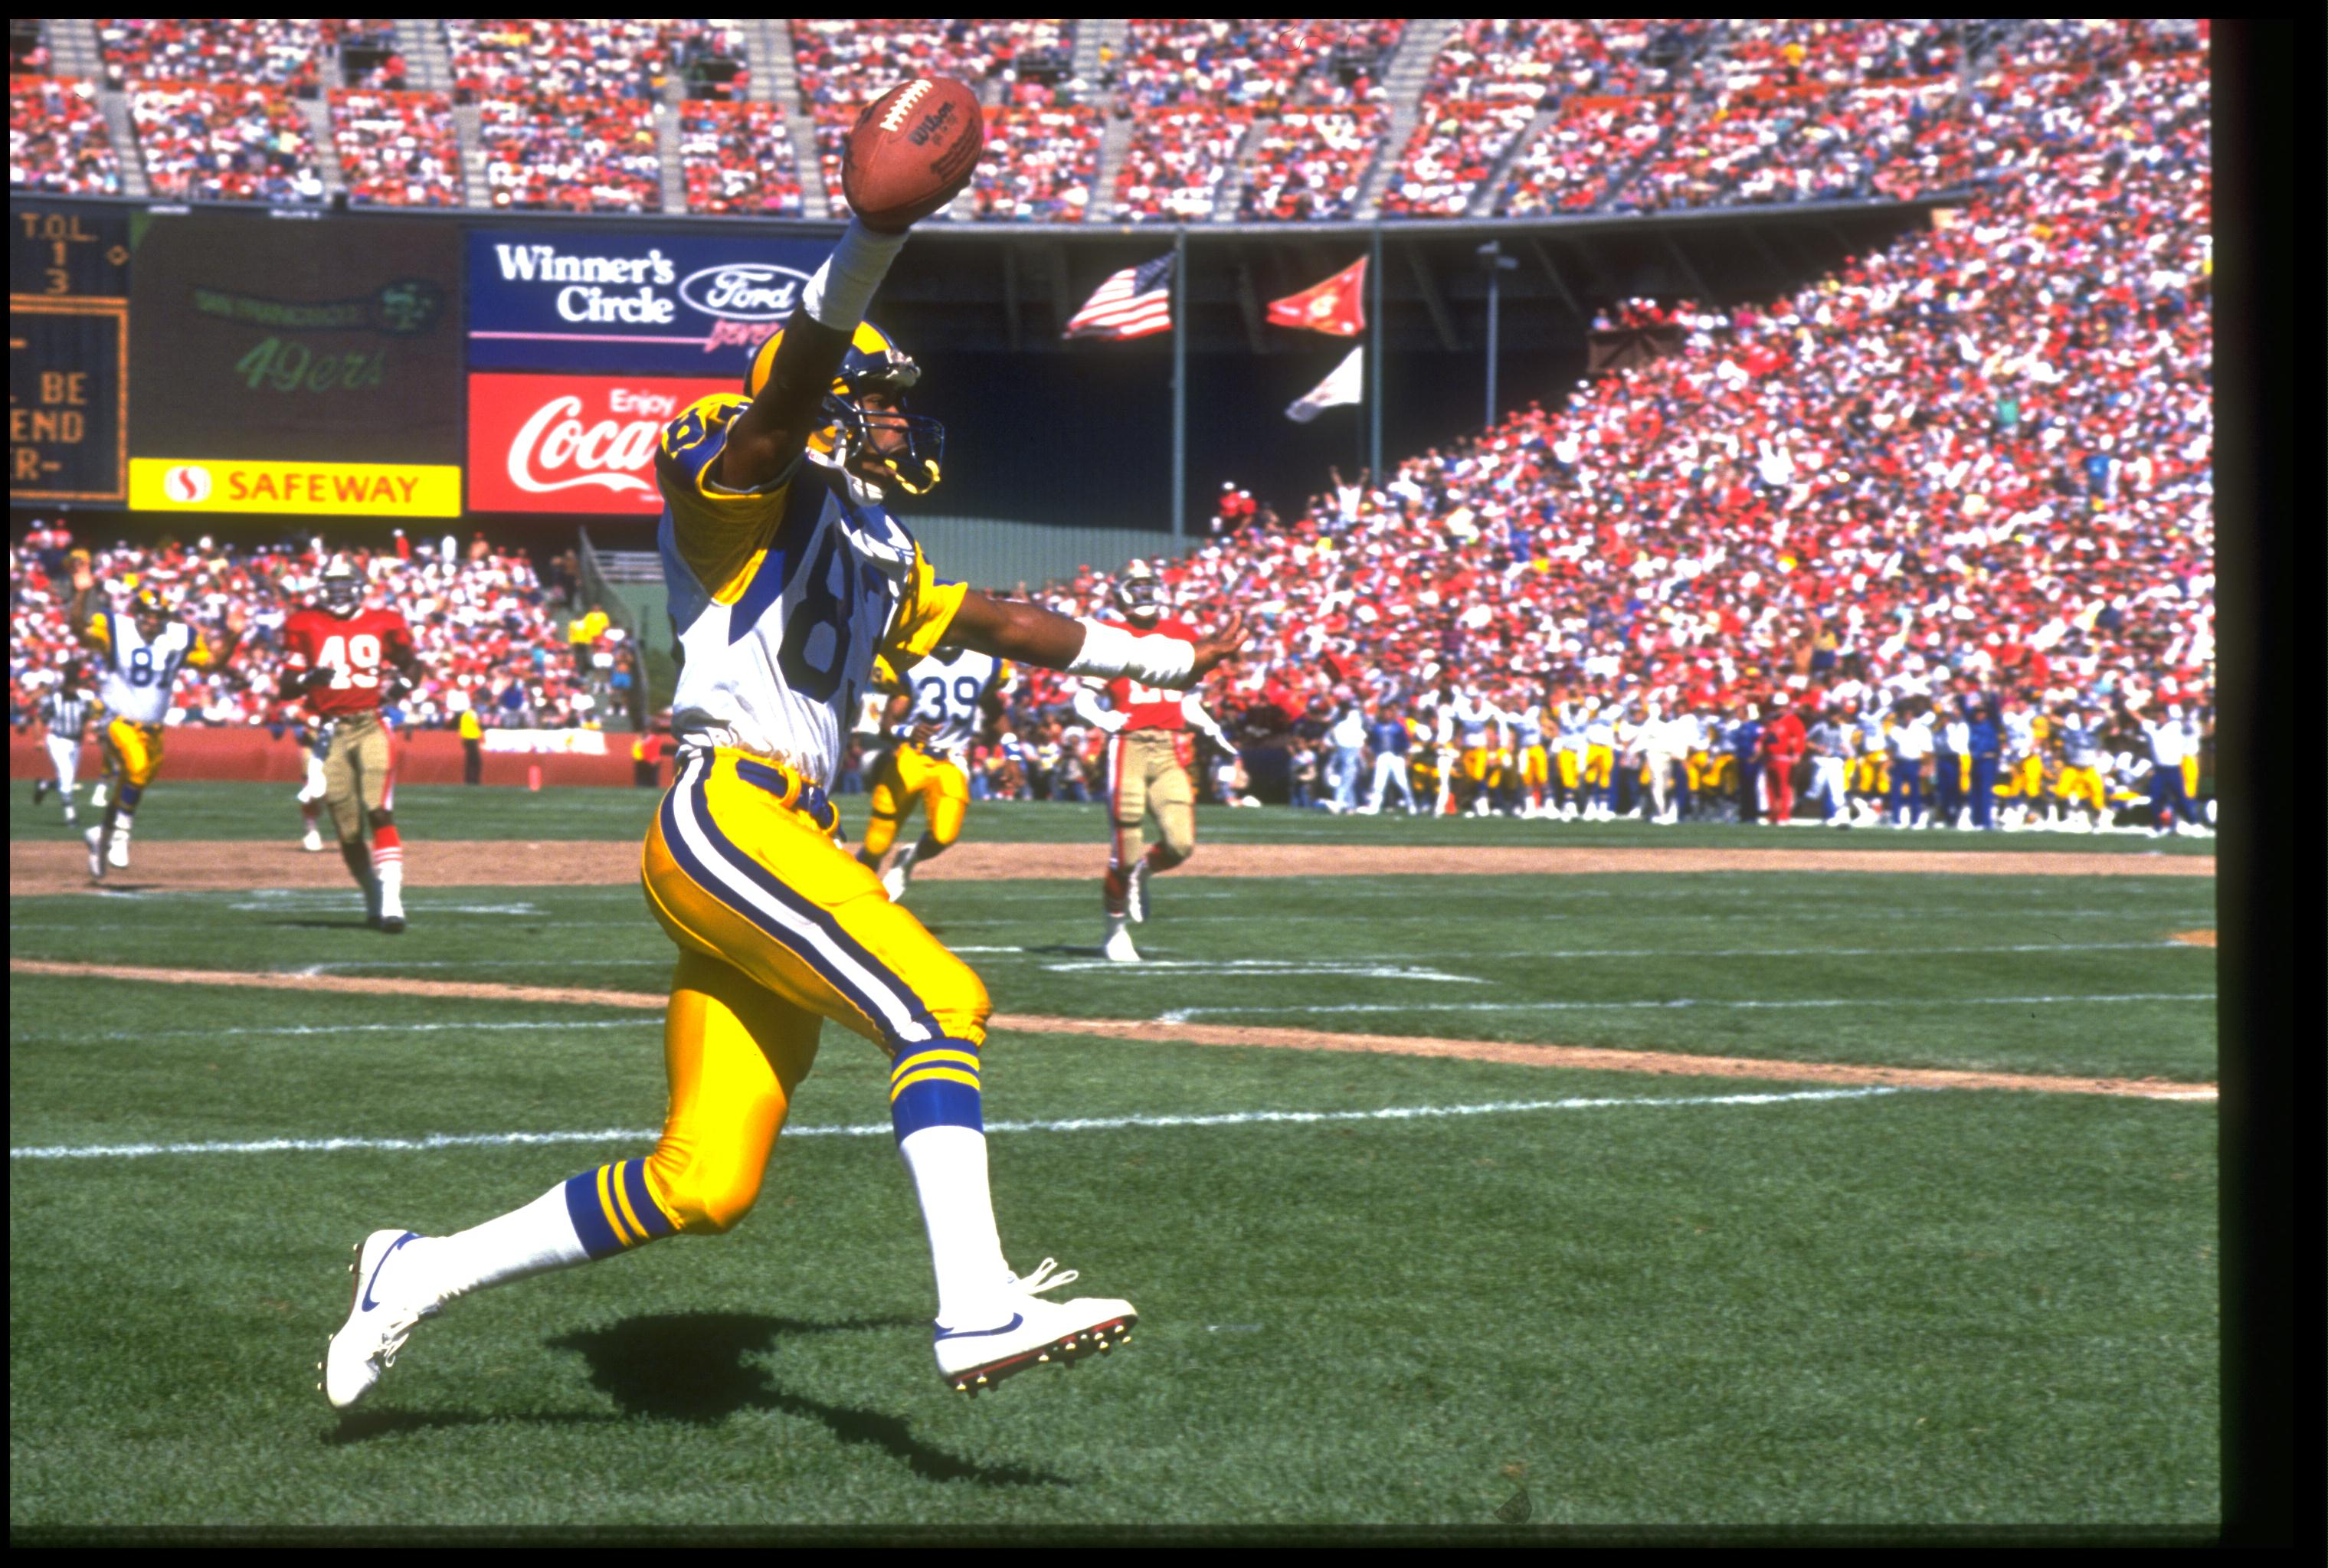 Former Bruin Flipper Anderson played for the Rams.